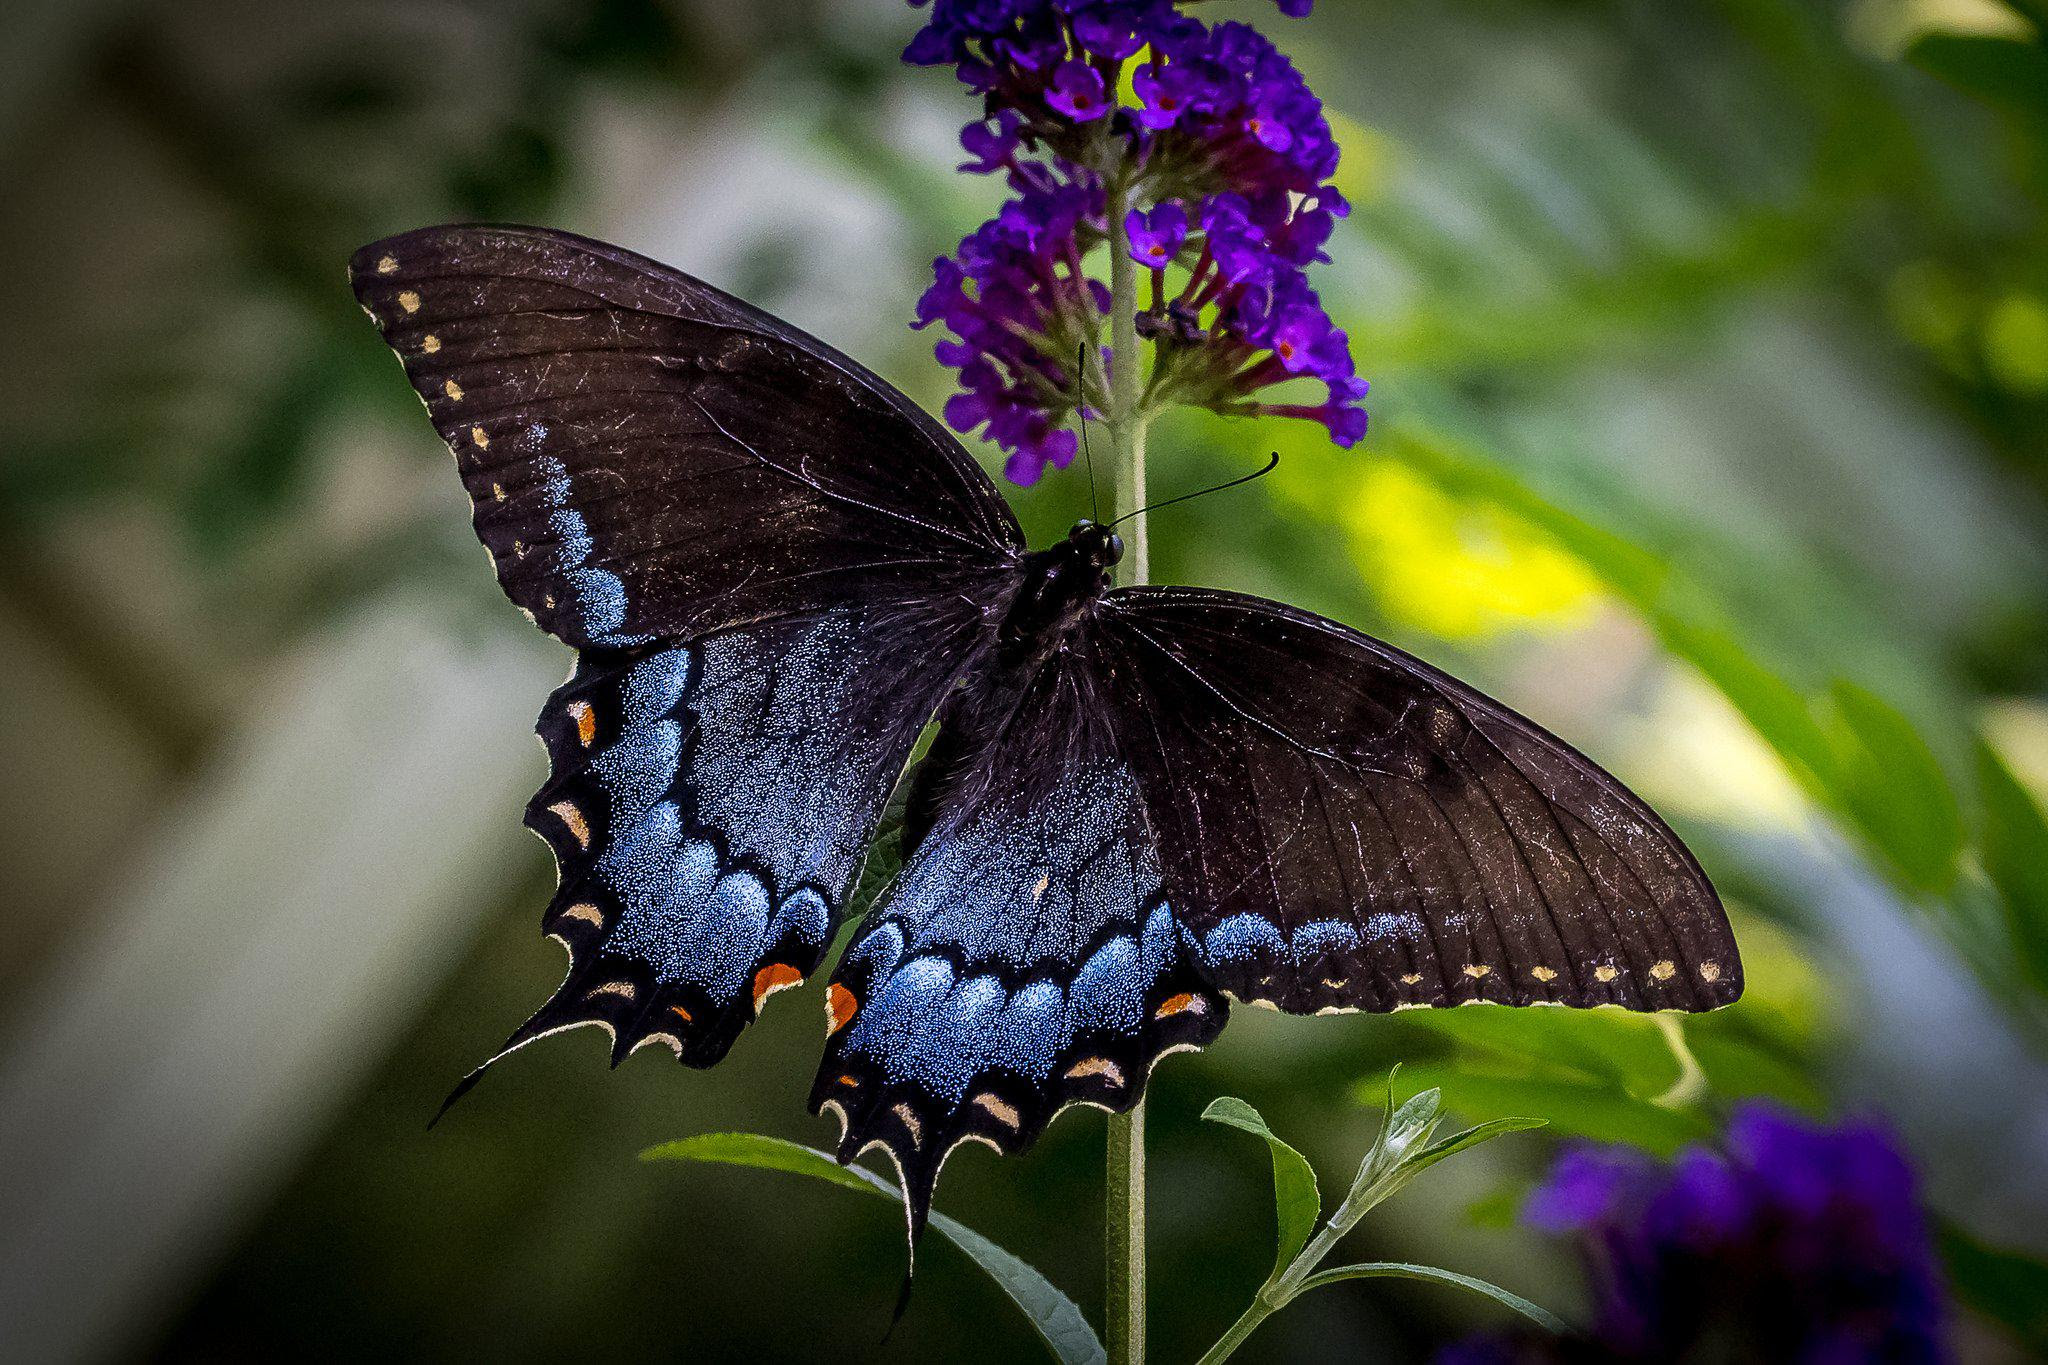 Butterfly Wallpapers High Quality   Download Free